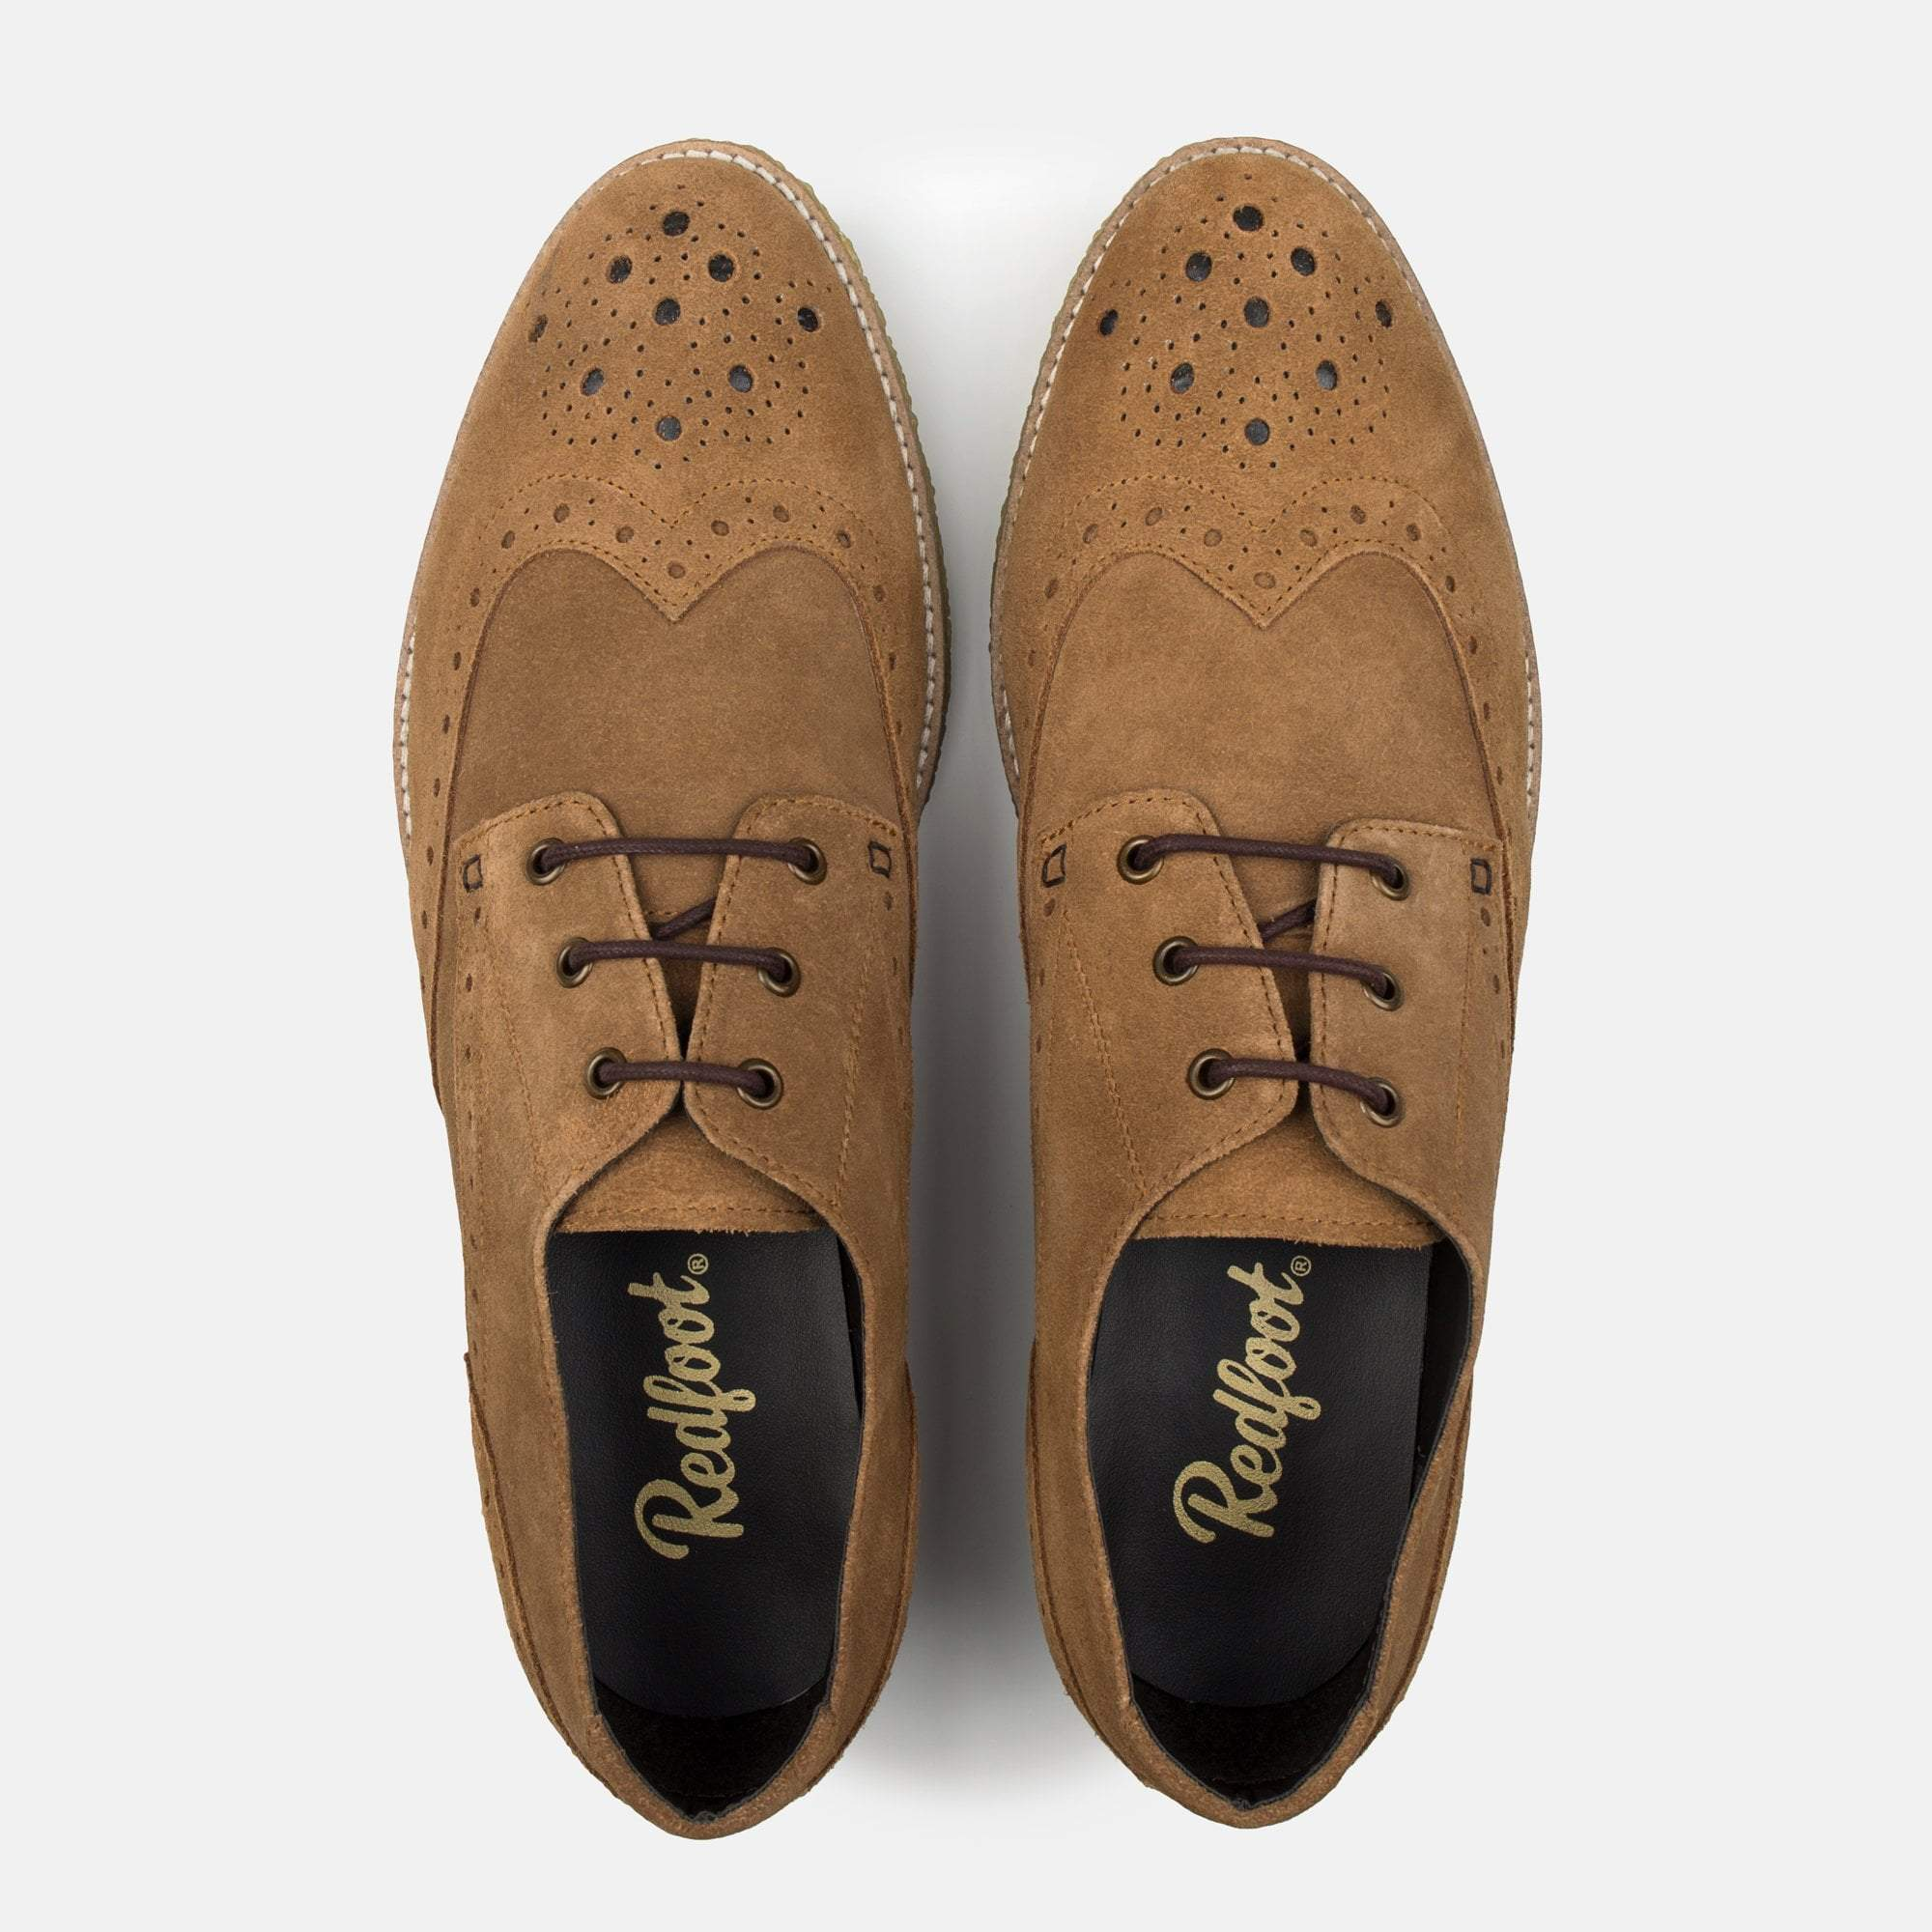 Redfoot Footwear UK 6 / EURO 39 / US 7 / Navy / Suede ROBINSON CHESTNUT